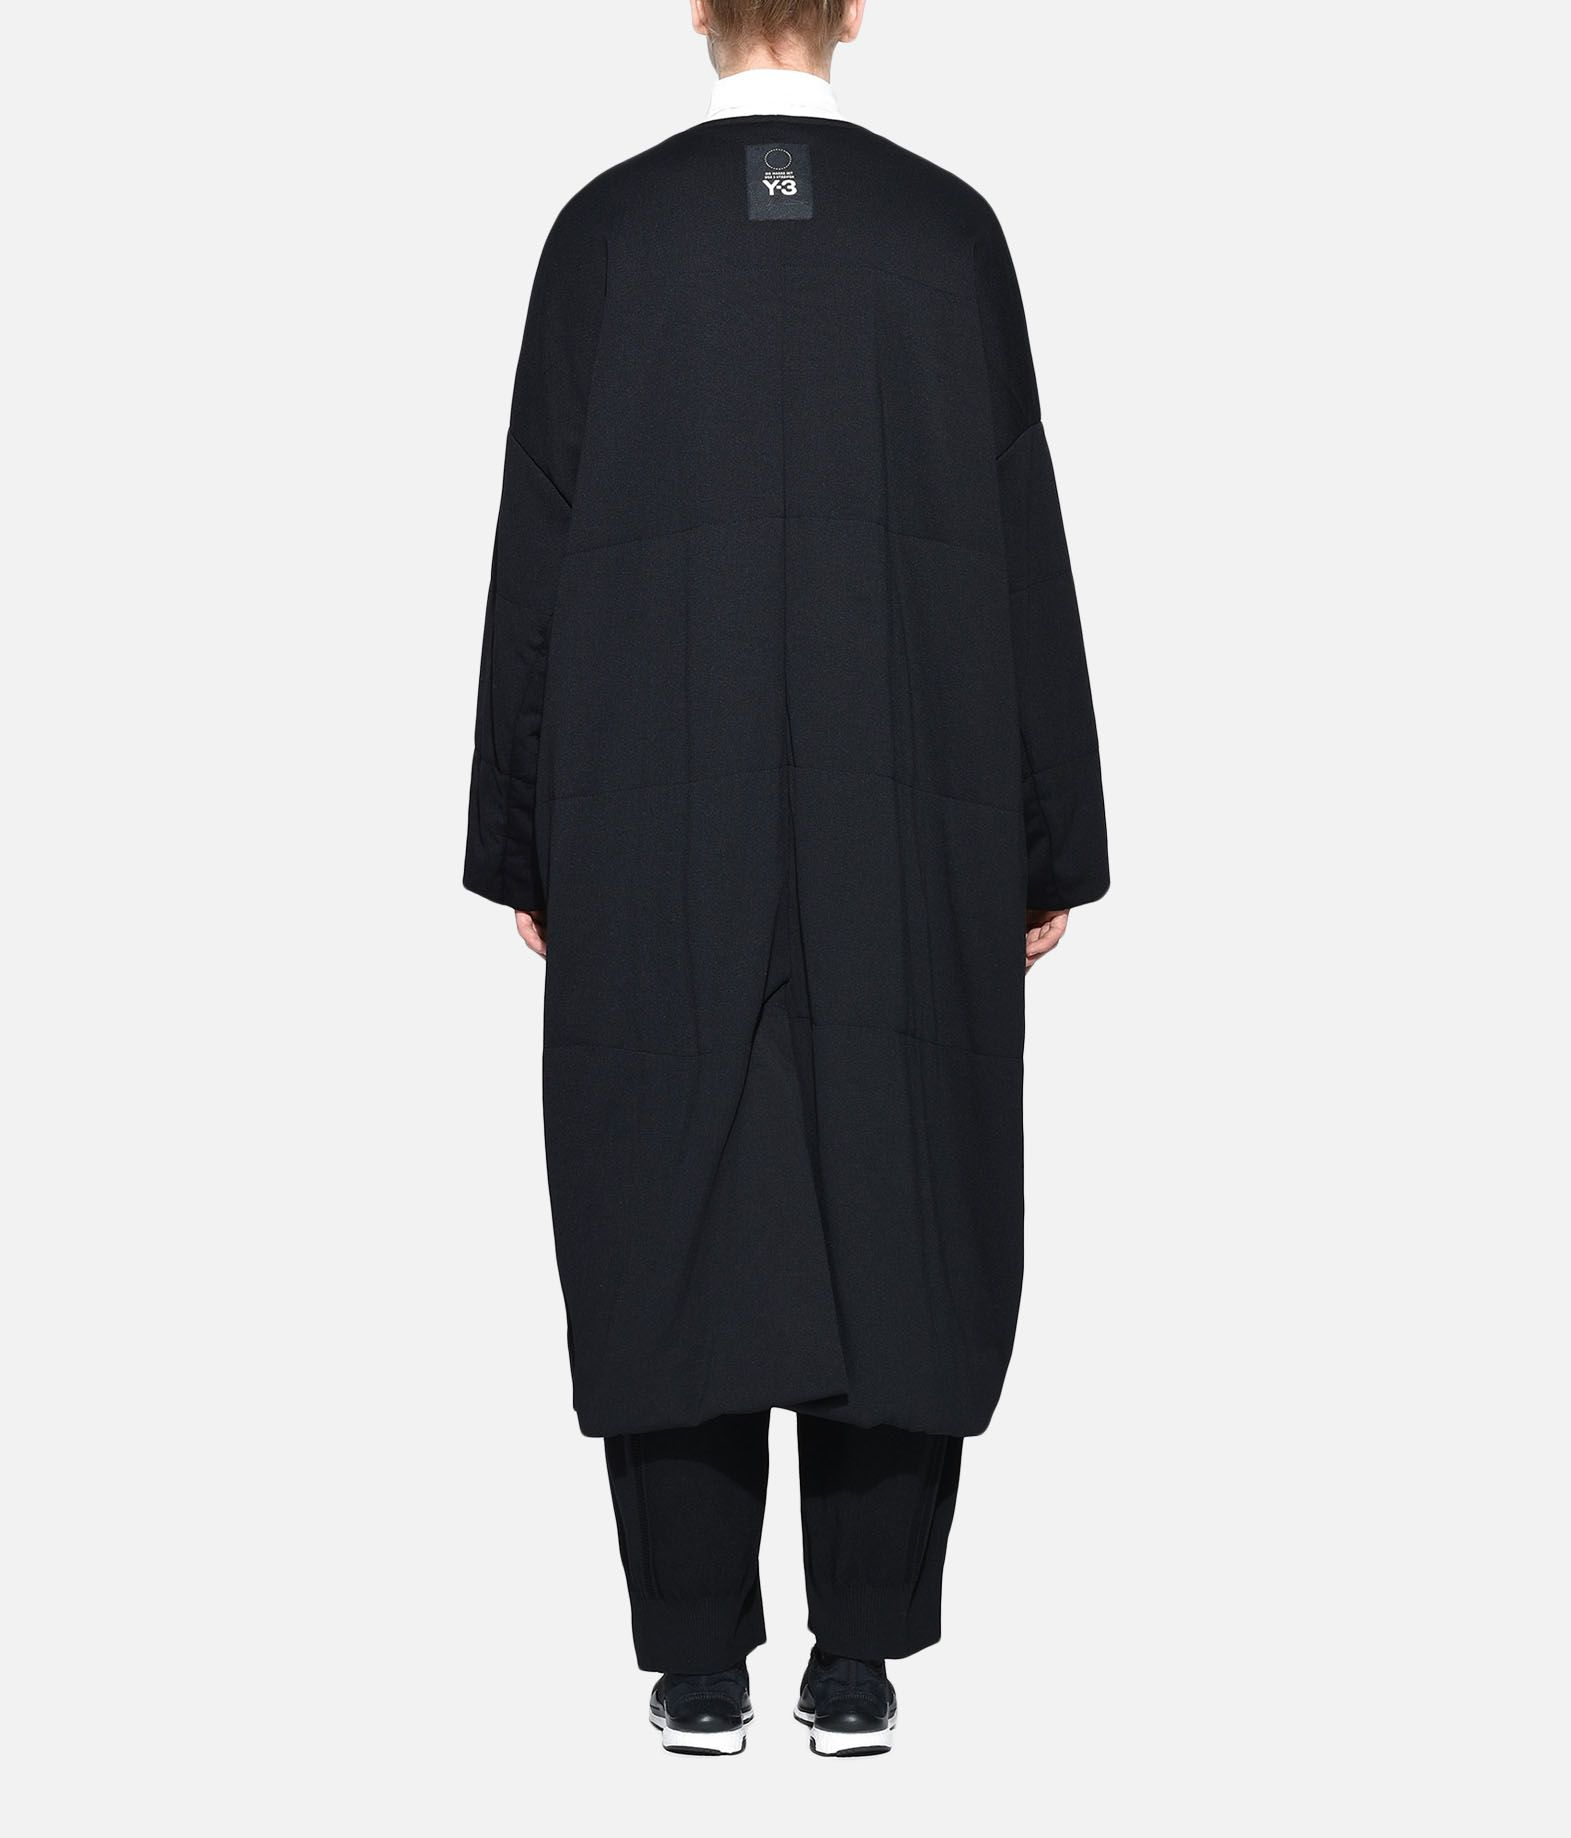 Y-3 Y-3 Oversize Padded Coat Coat Woman d